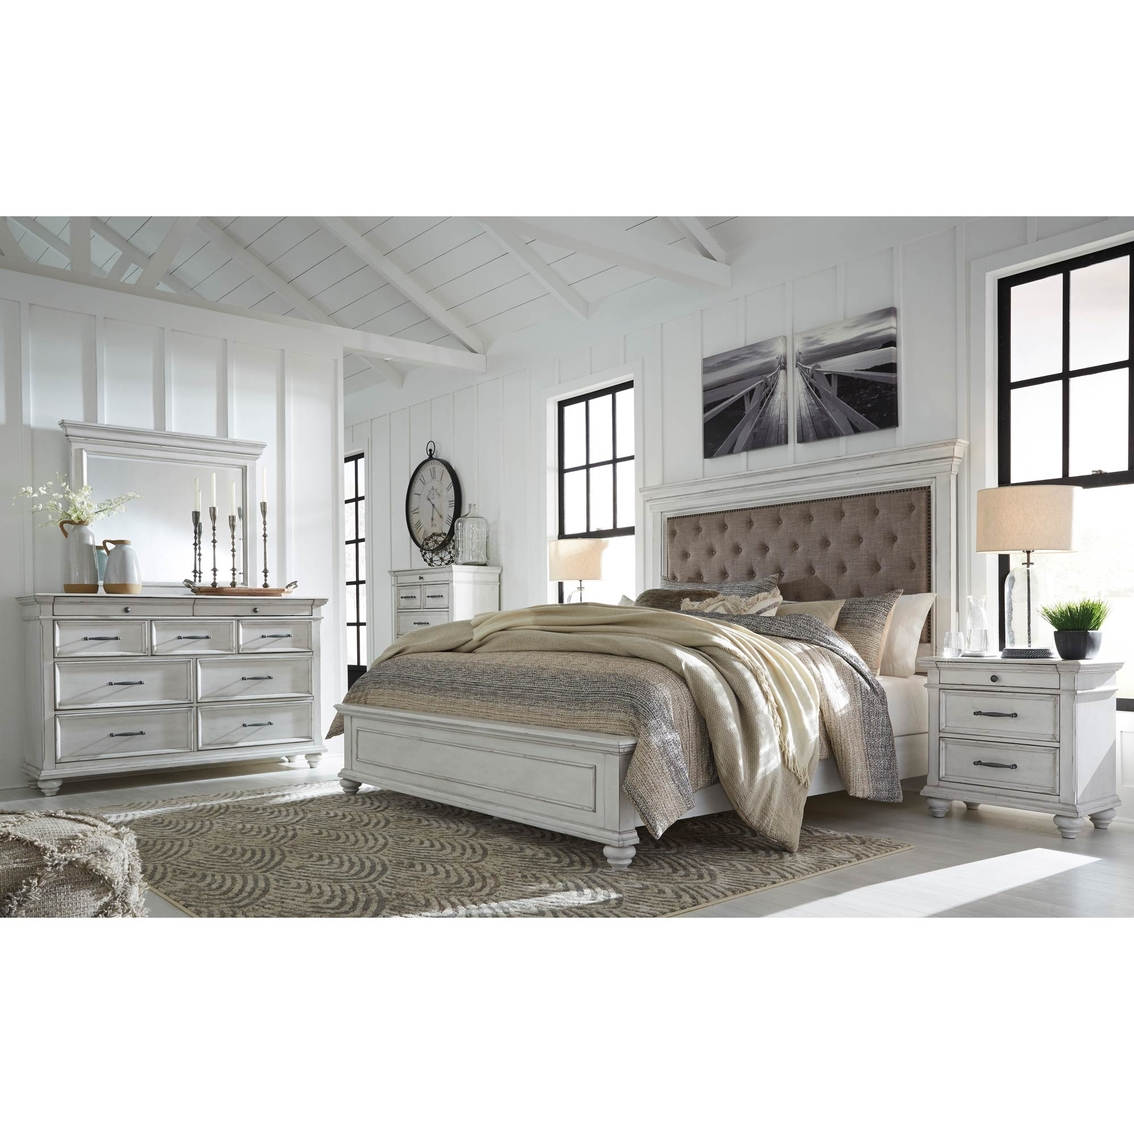 Kanwyn Uph Panel Bed 5pc Set Queen Bedroom Sets Furniture Appliances Shop The Exchange